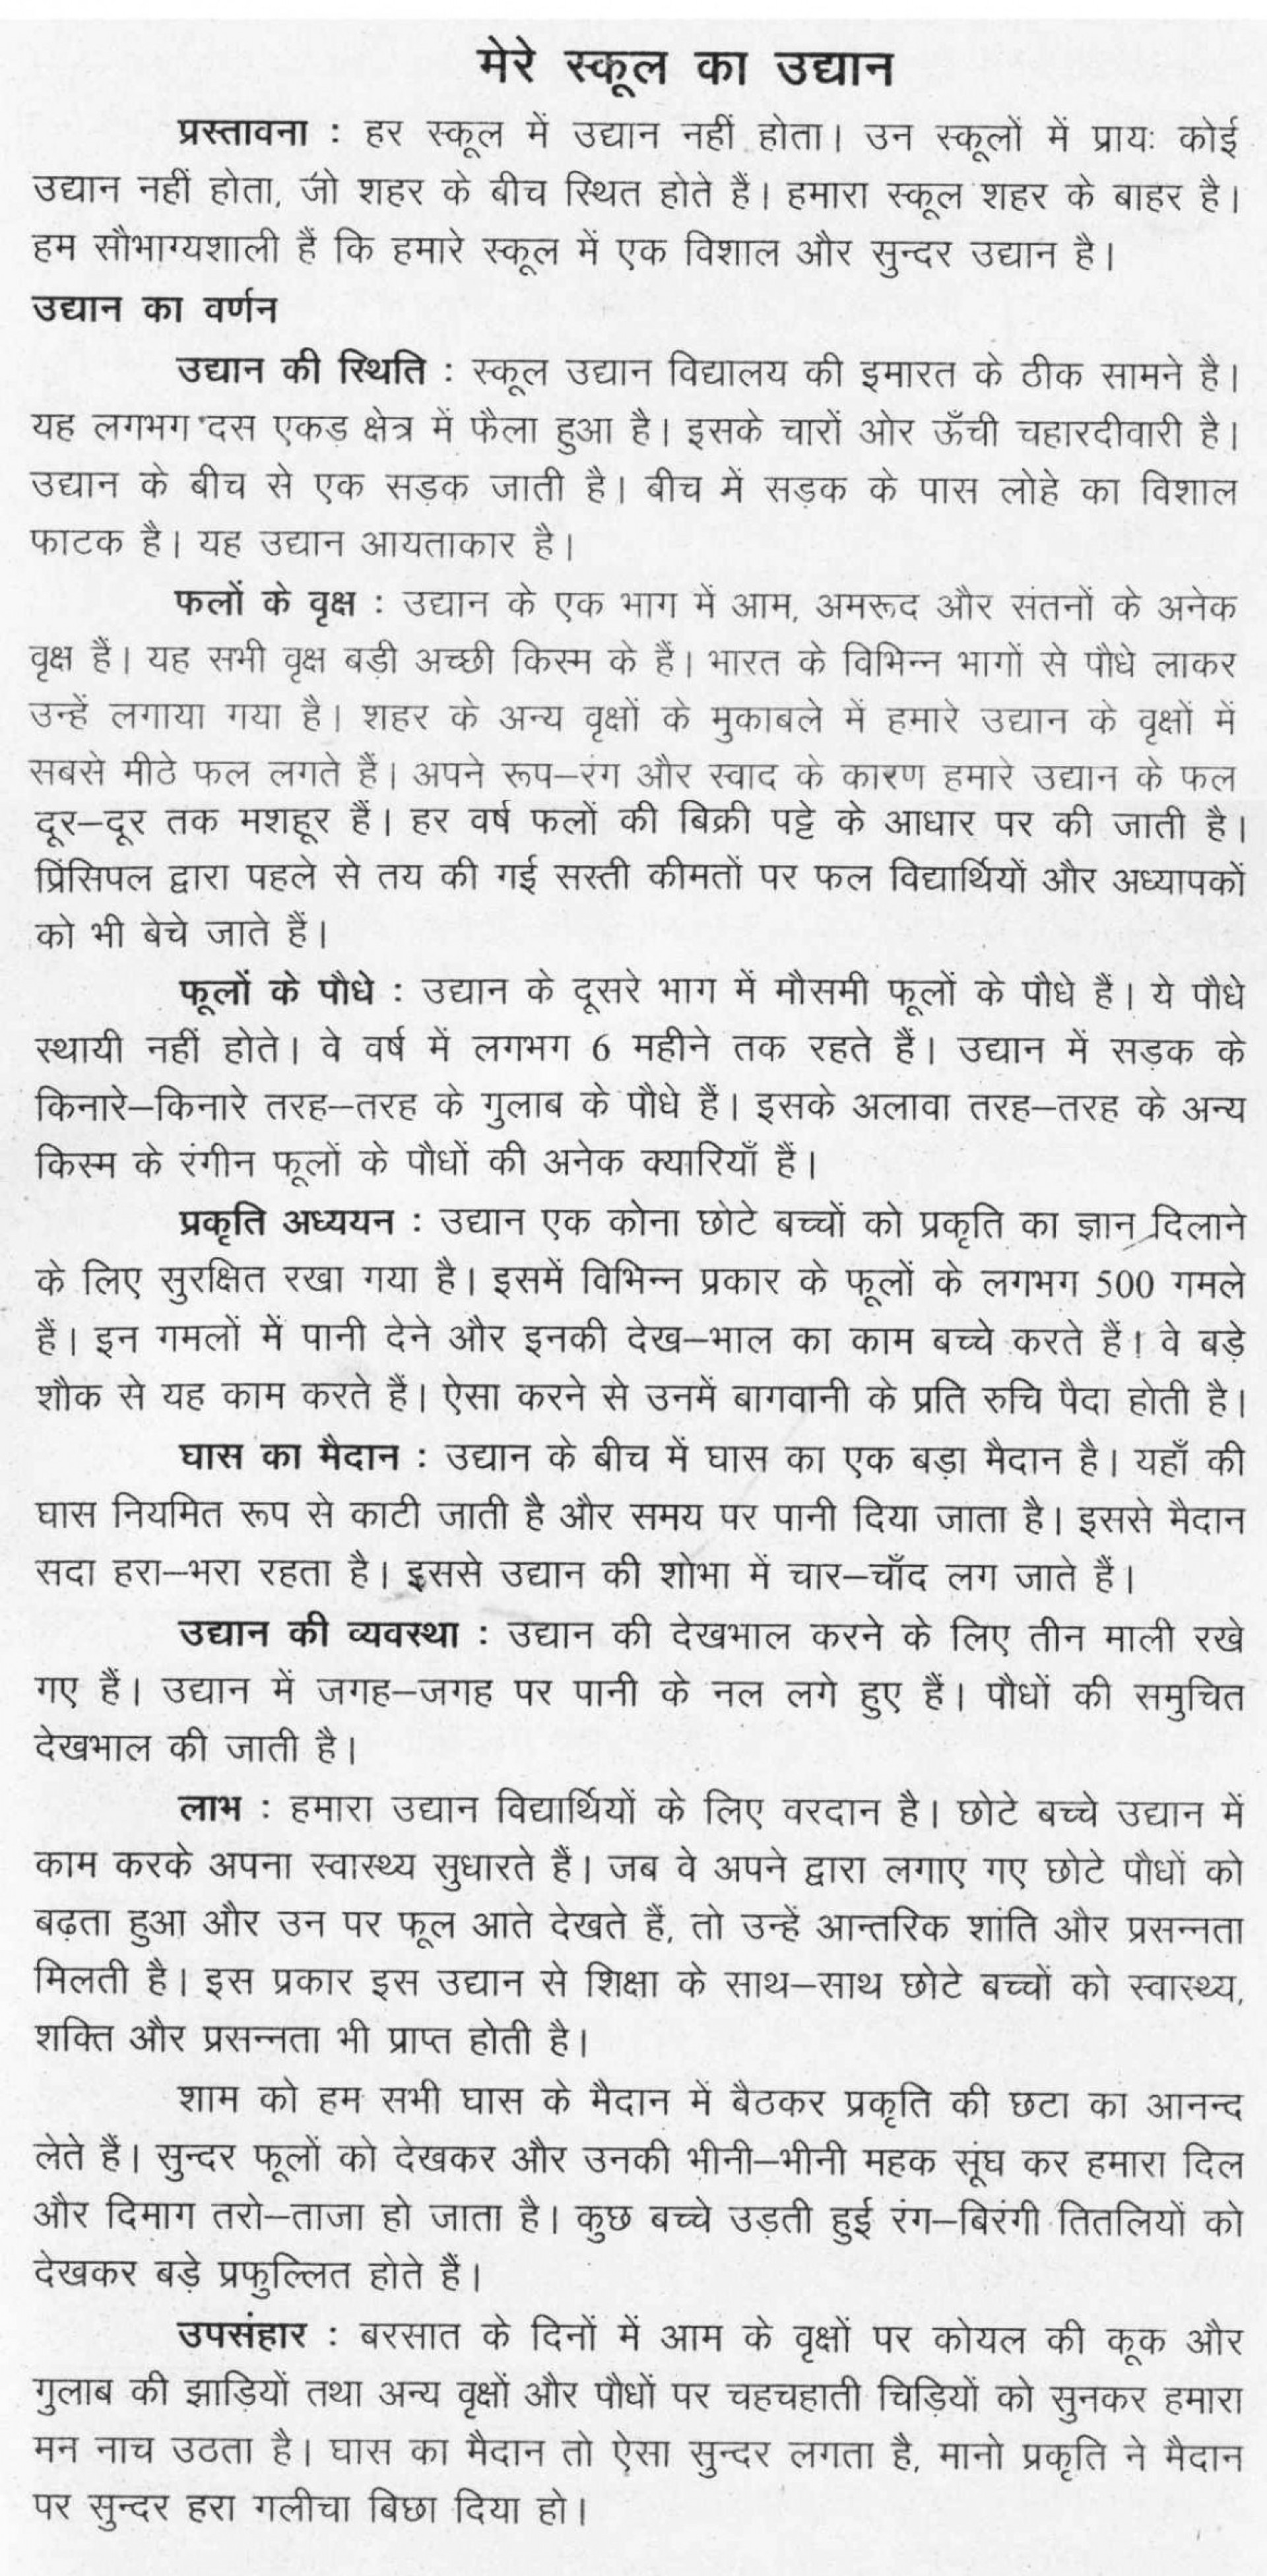 010 Our School Garden Essay Bamboodownunder Com On Gardenssl1 Stunning Gardening By Henk Gerritsen In Sanskrit Language Hindi 1920